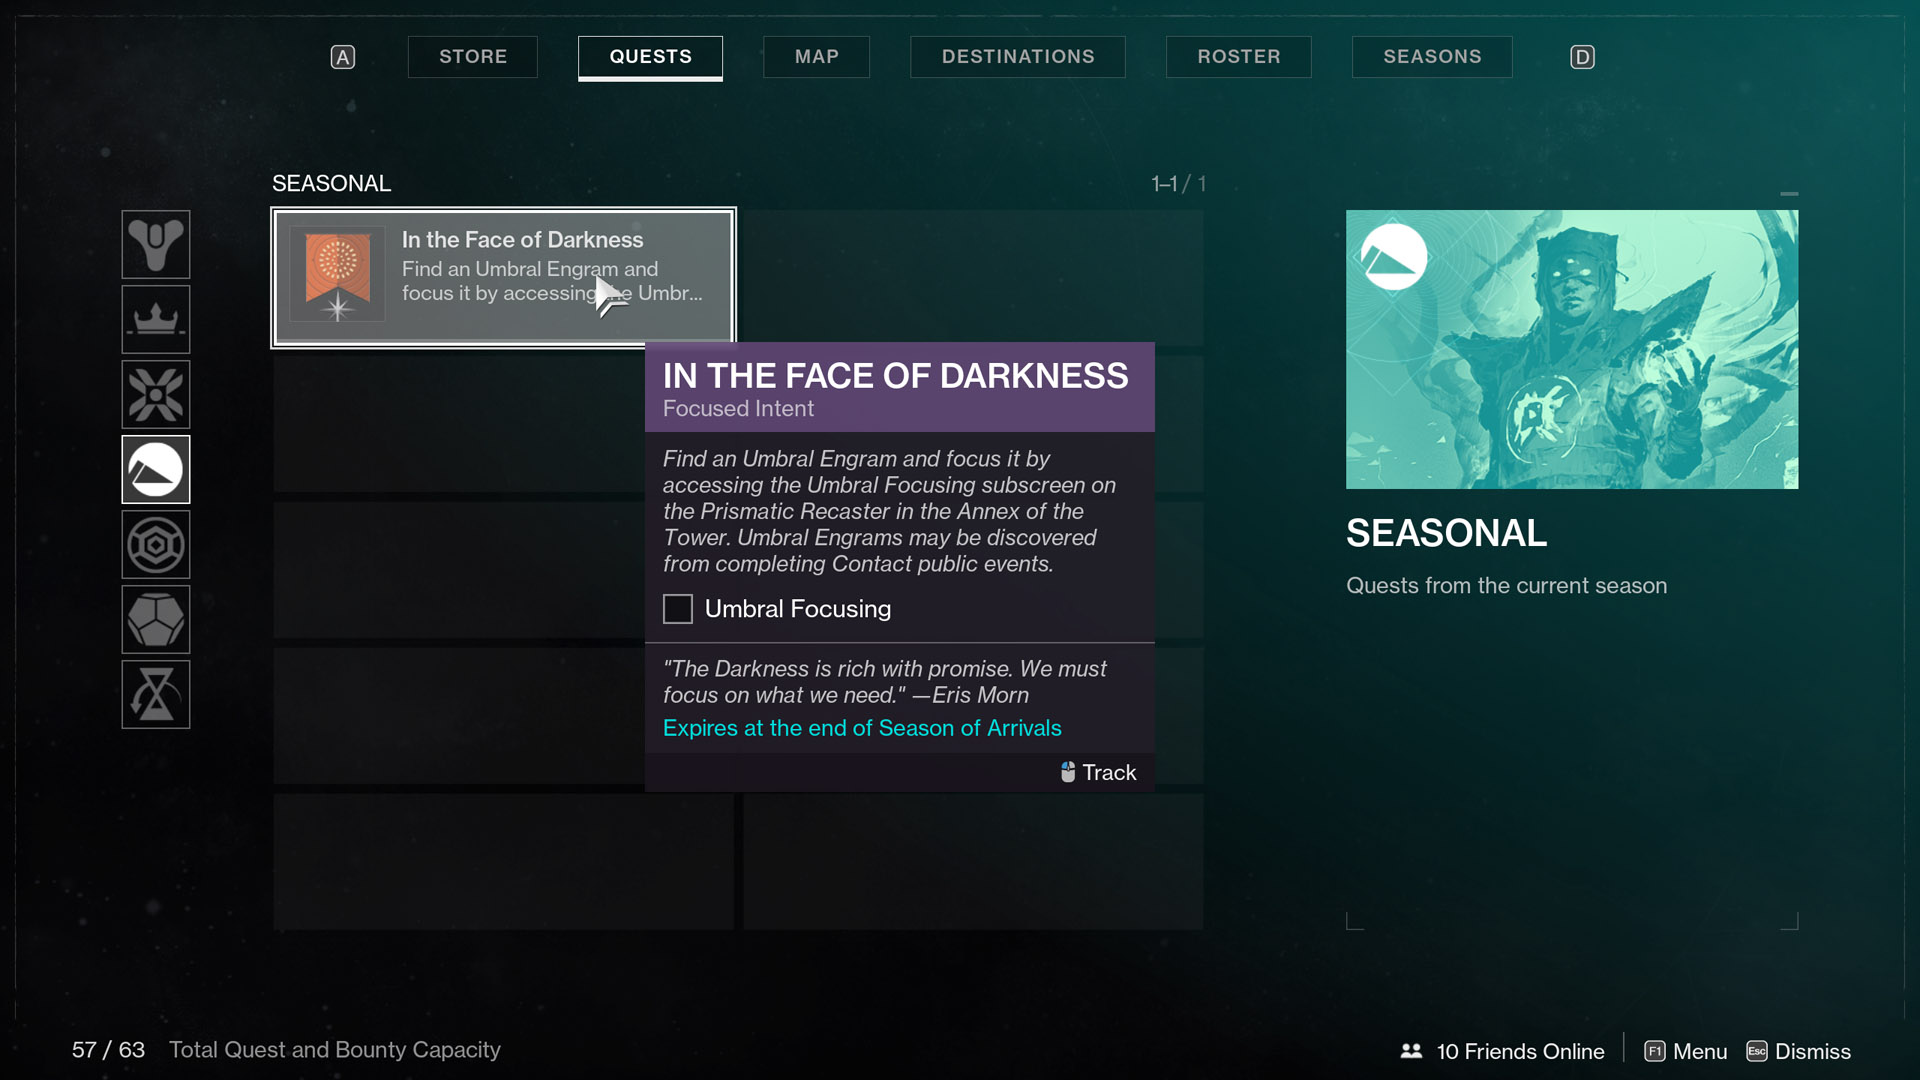 destiny 2 season of arrivals in the face of darkness Focused Intent